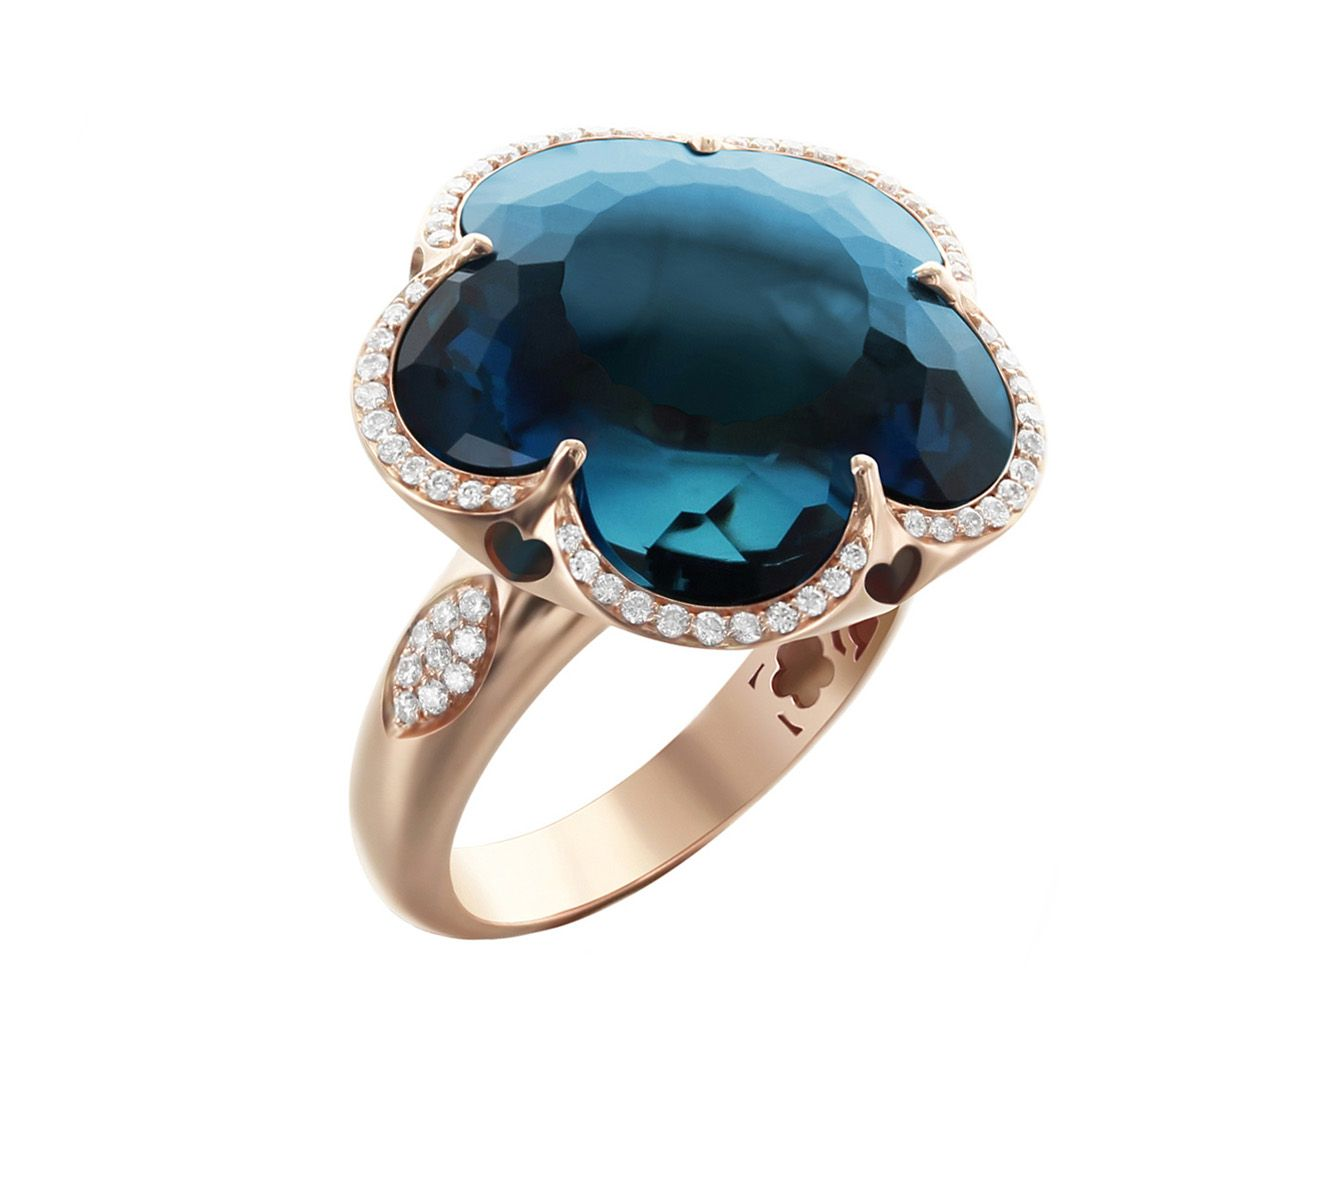 BON TON RING WITH LONDON BLUE TOPAZ 17mm